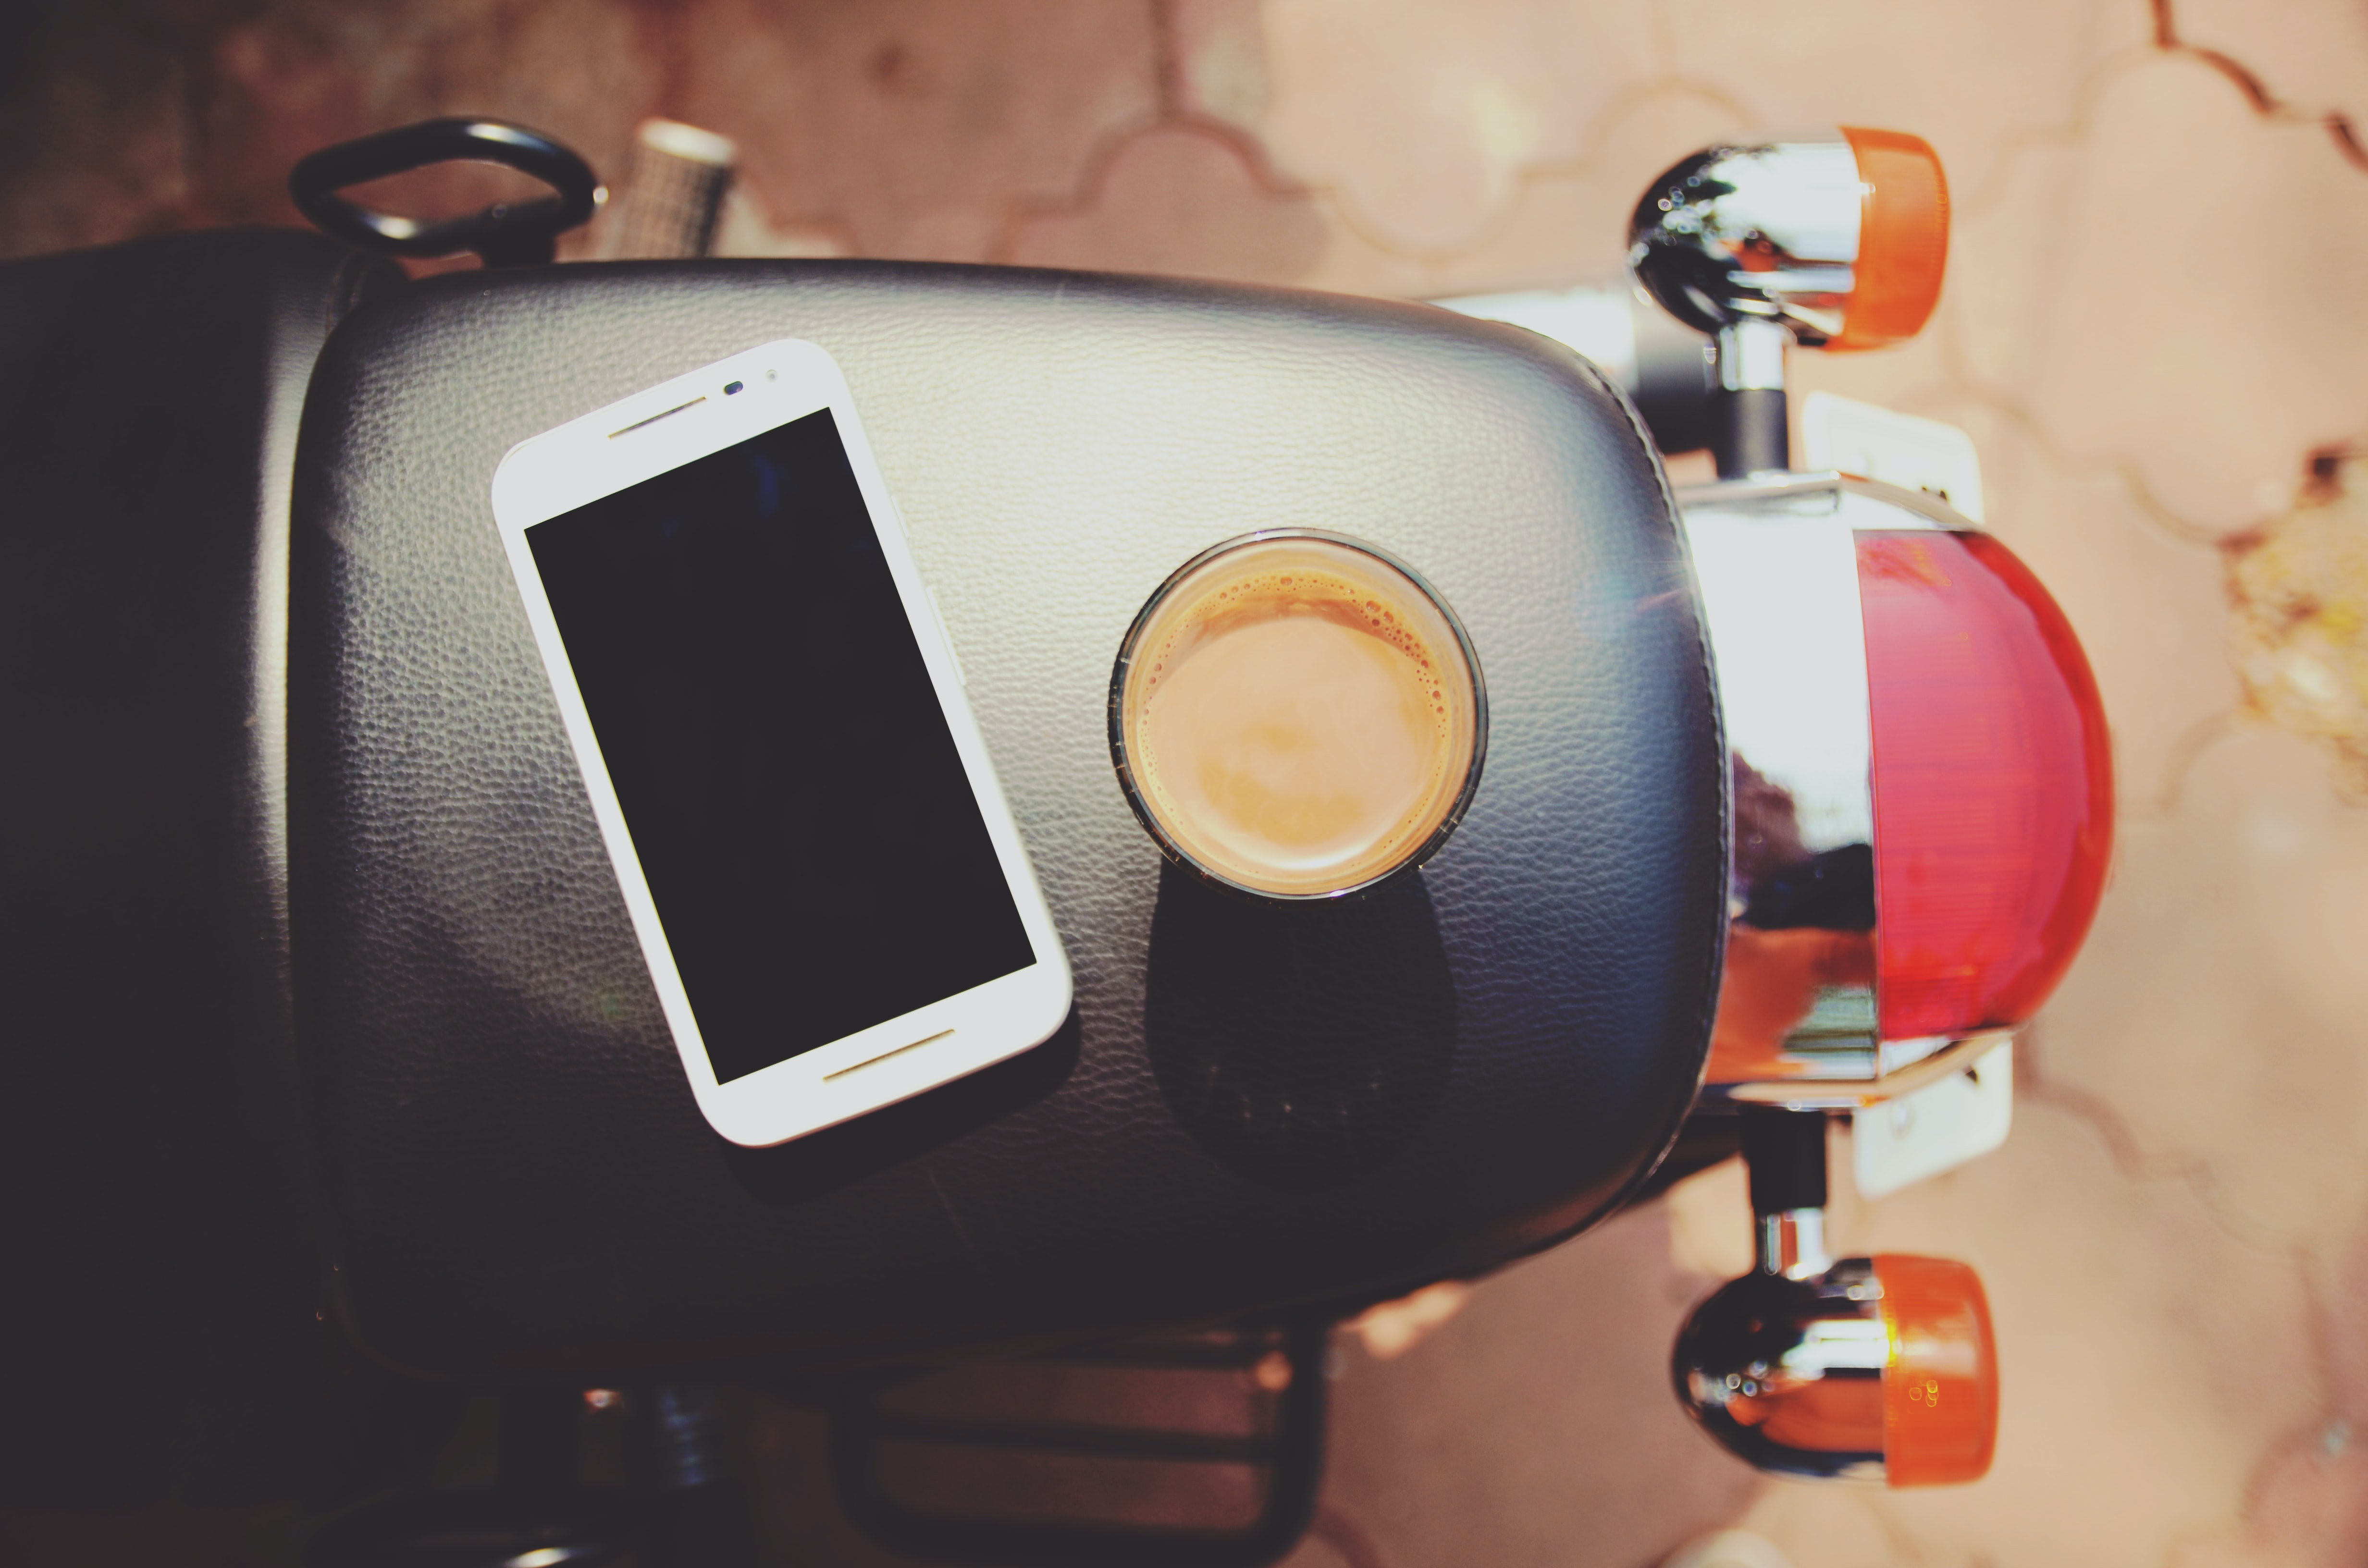 An overhead shot of a smartphone and a cup of coffee on a leather motorcycle seat